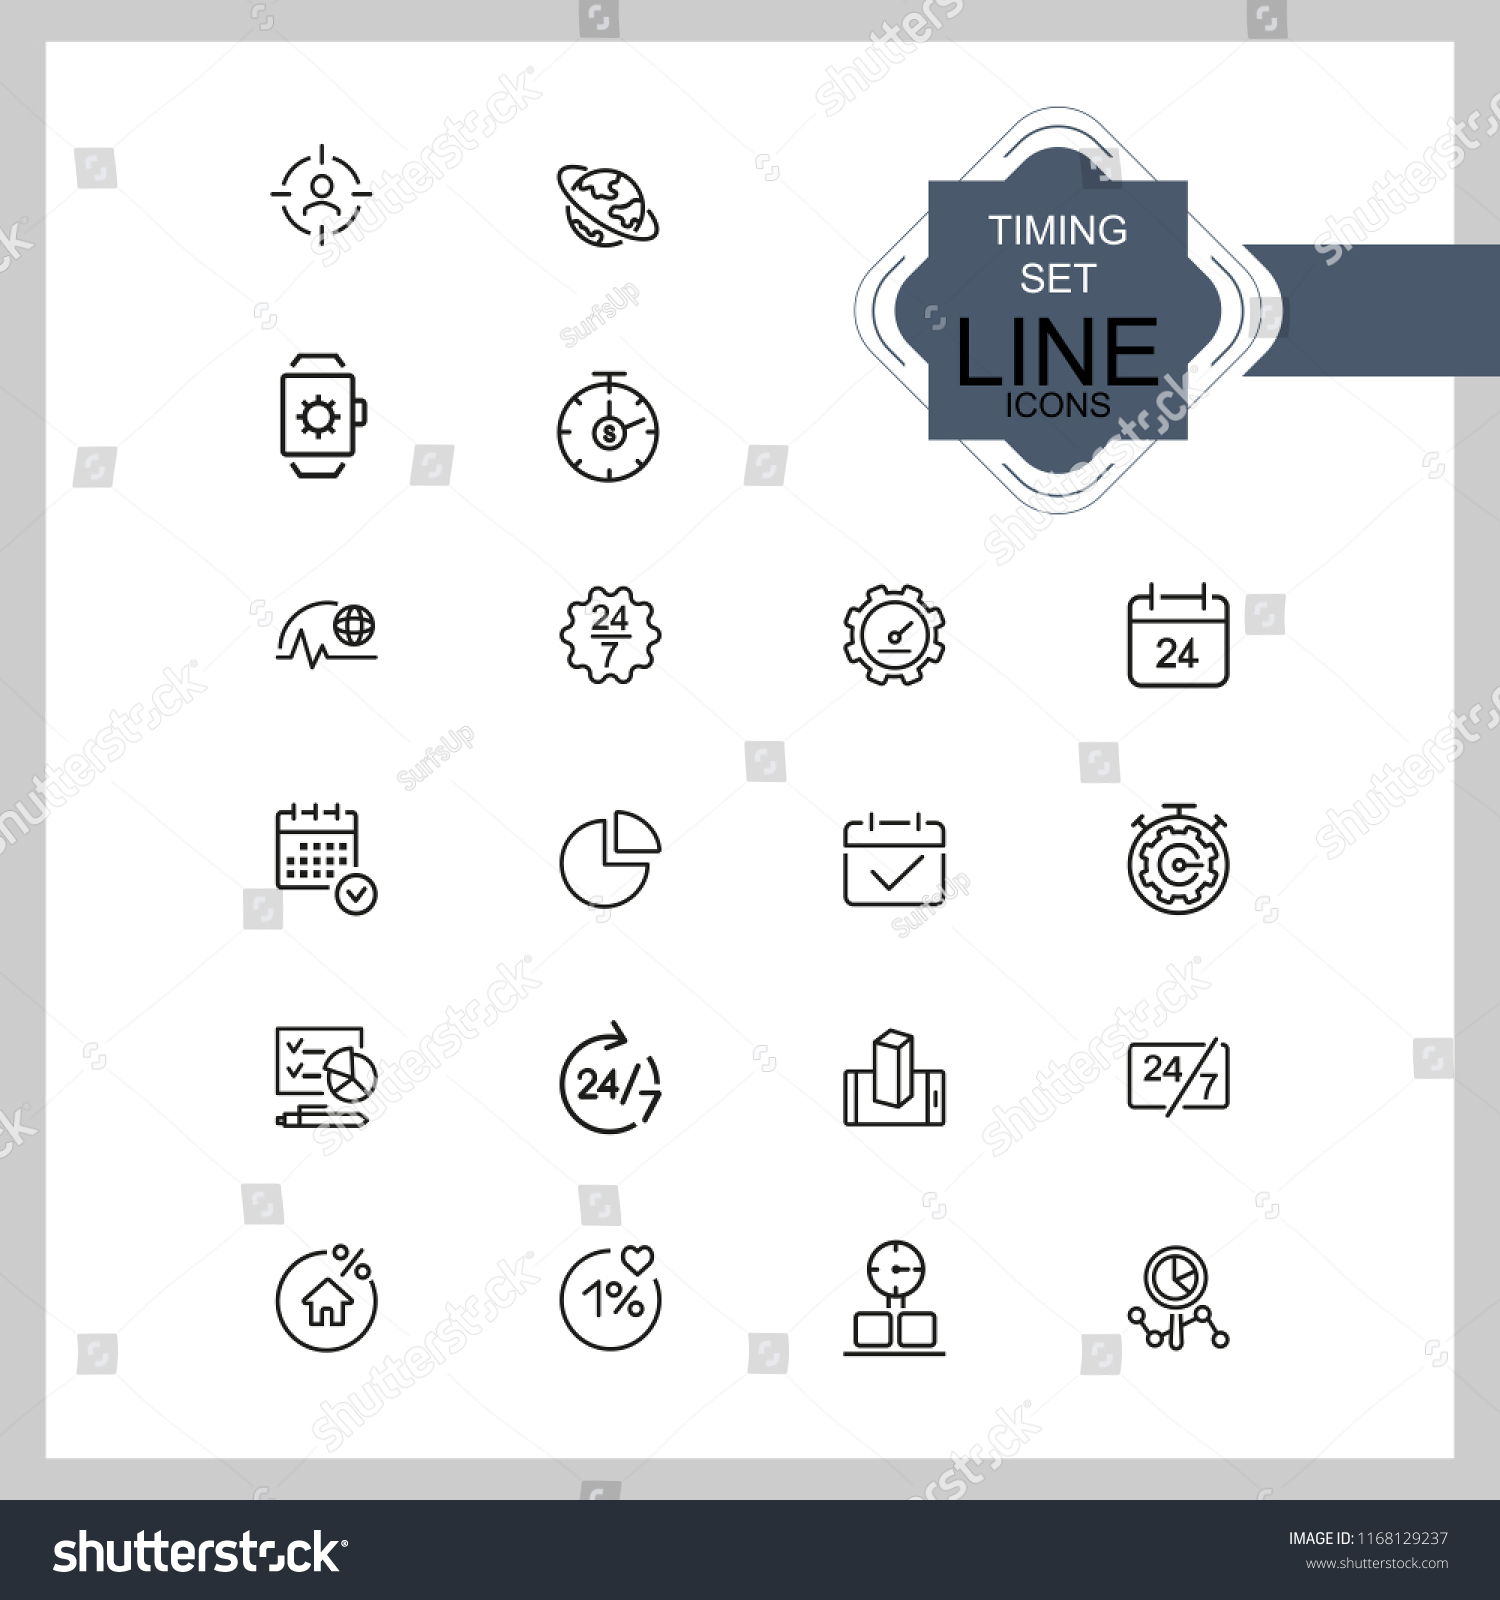 timing icons set line icons all stock vector royalty free